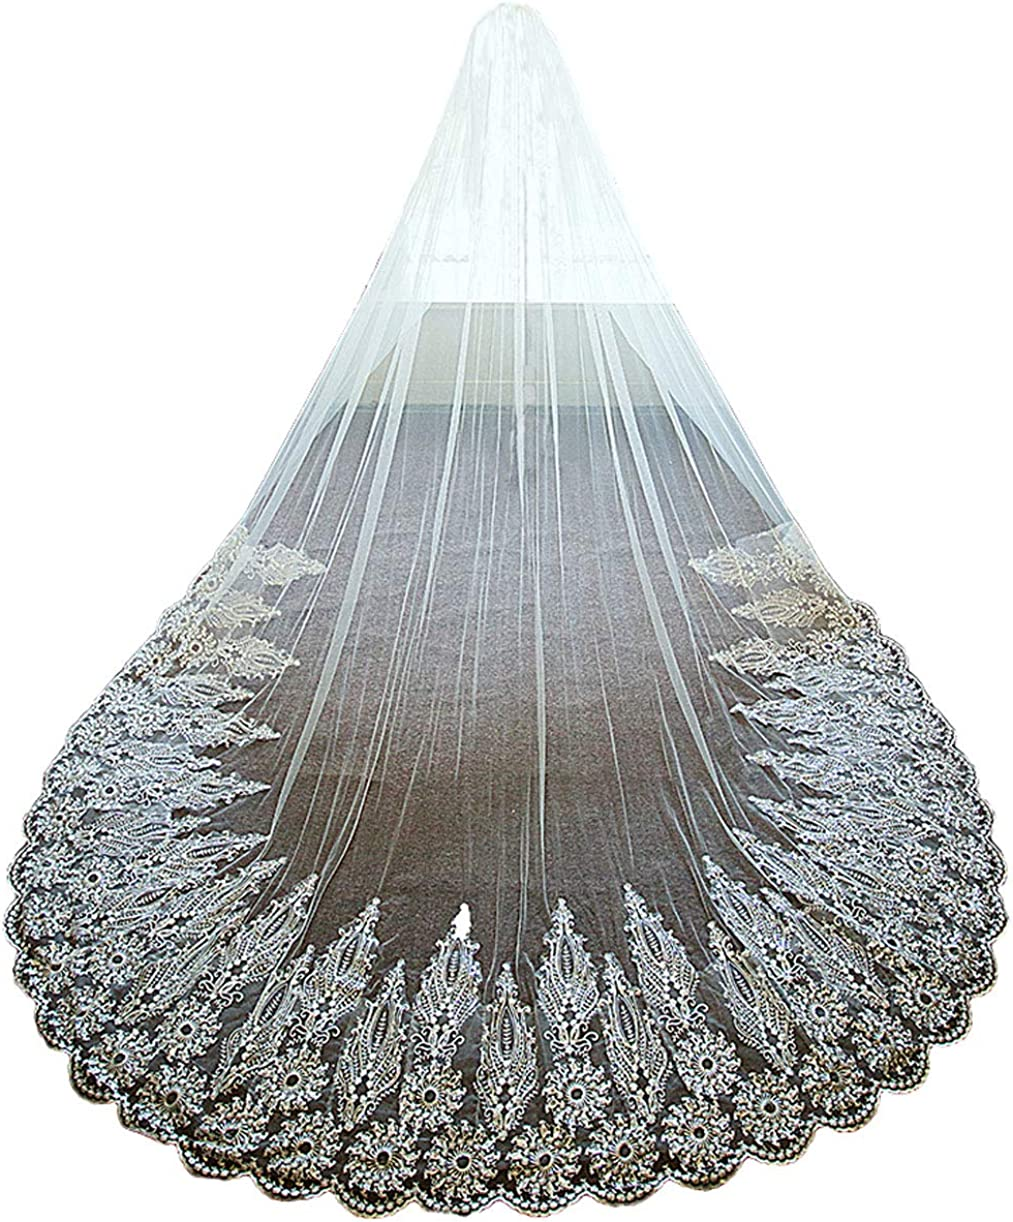 Lace White Ivory Cathedral Wedding Veil for Brides with Sequins Metal Comb